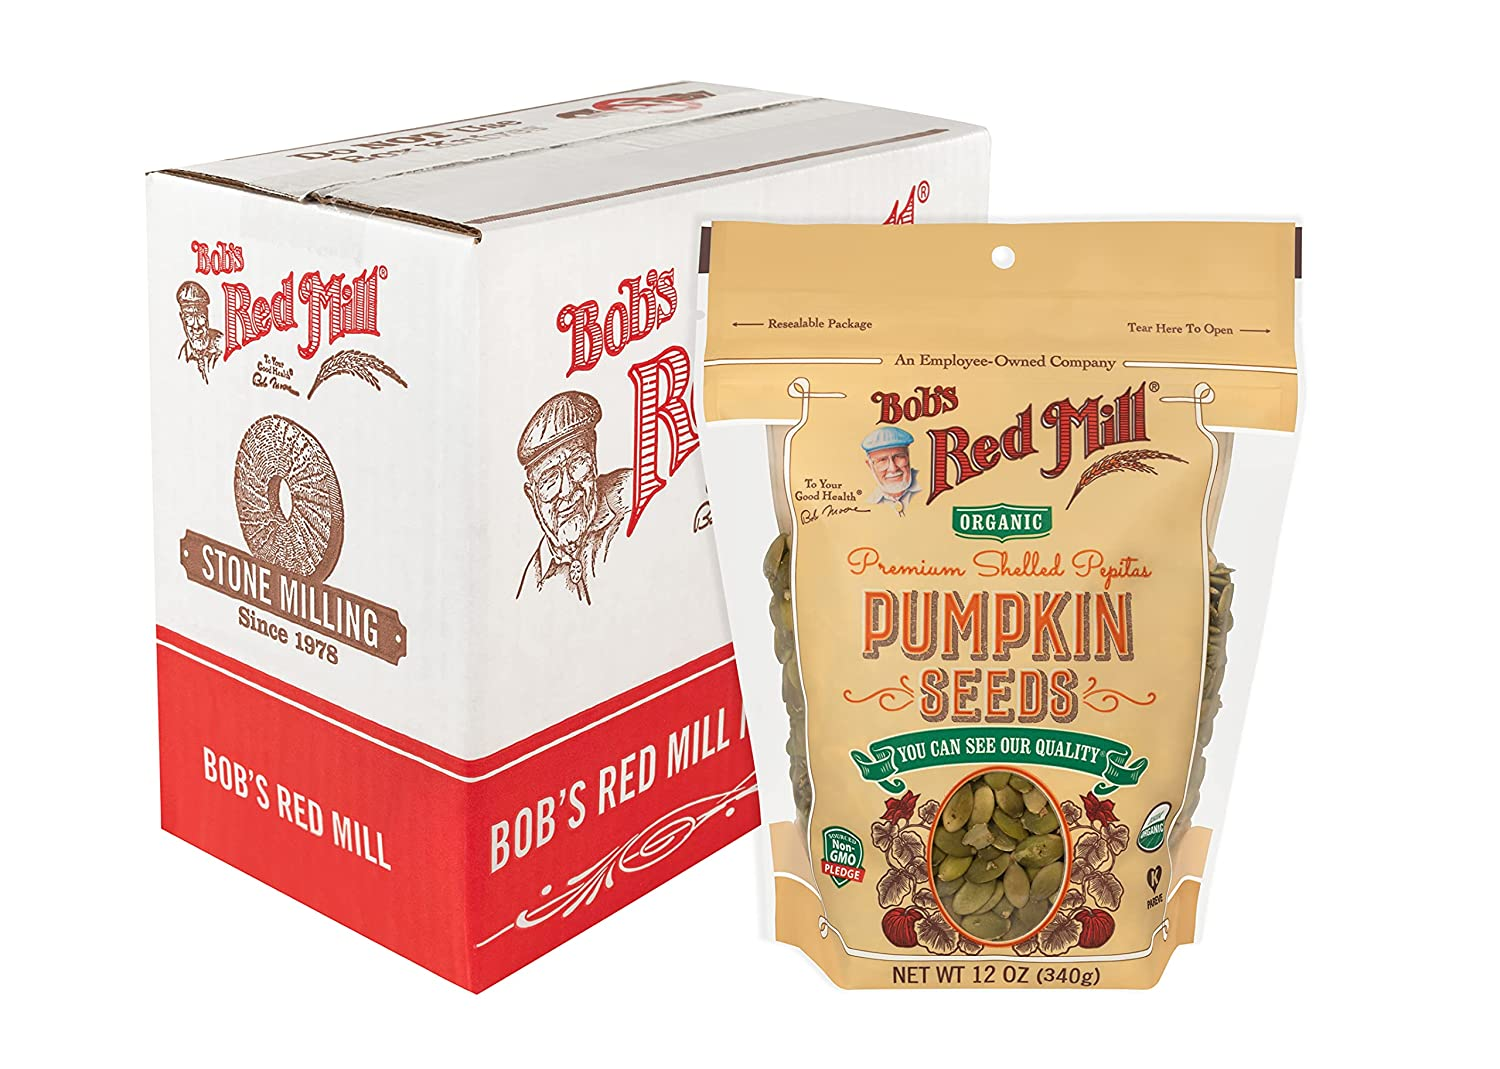 Bob's Red Mill Pumpkin Seeds Oz of 4 12 Max 75% OFF Bombing free shipping Pack